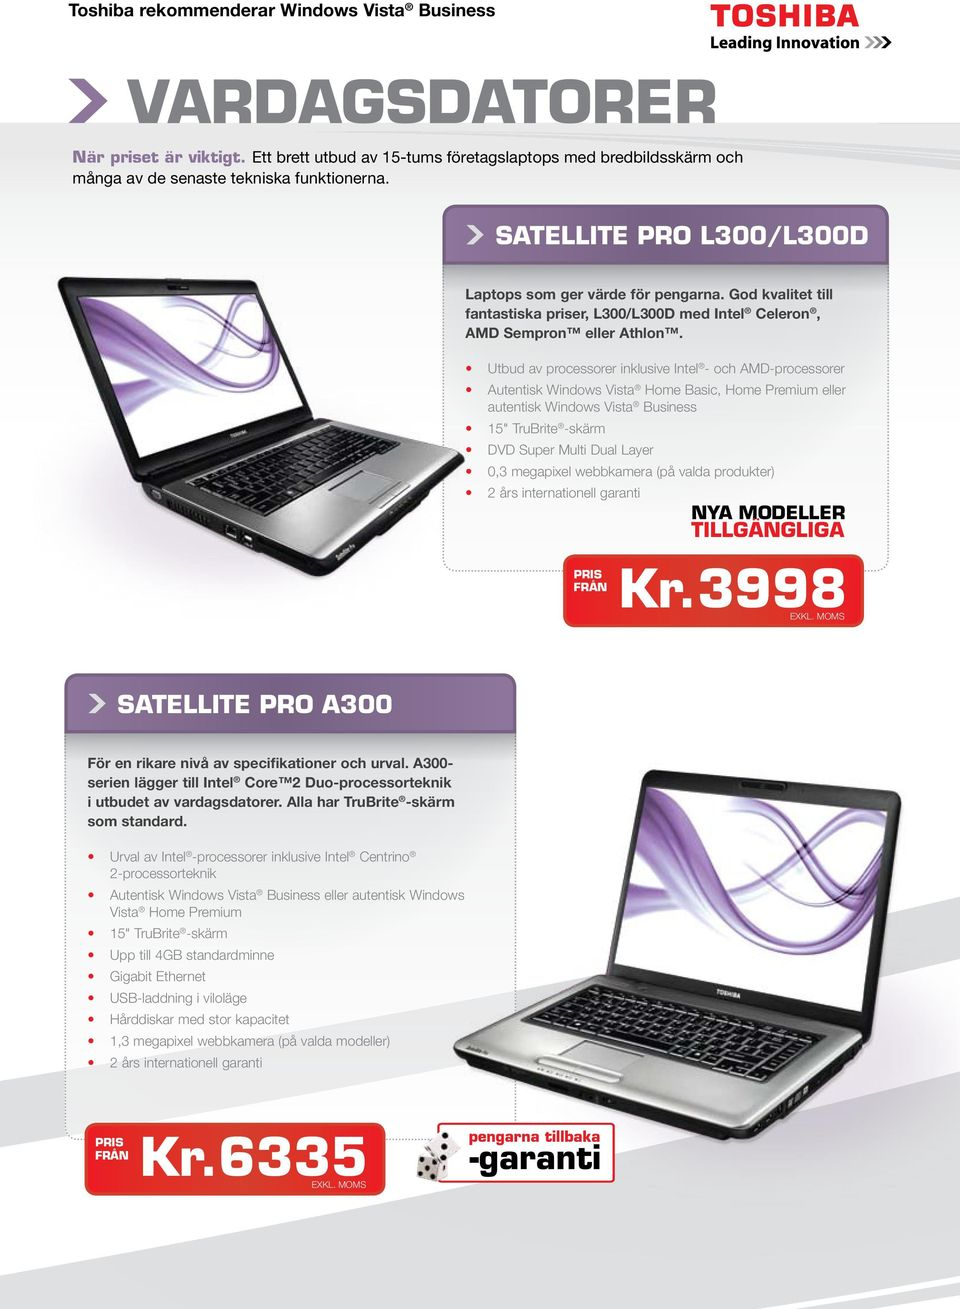 "Utbud av processorer inklusive Intel - och AMD-processorer Autentisk Windows Vista Home Basic, Home Premium eller autentisk Windows Vista Business 15"" TruBrite -skärm DVD Super Multi Dual Layer 0,3"